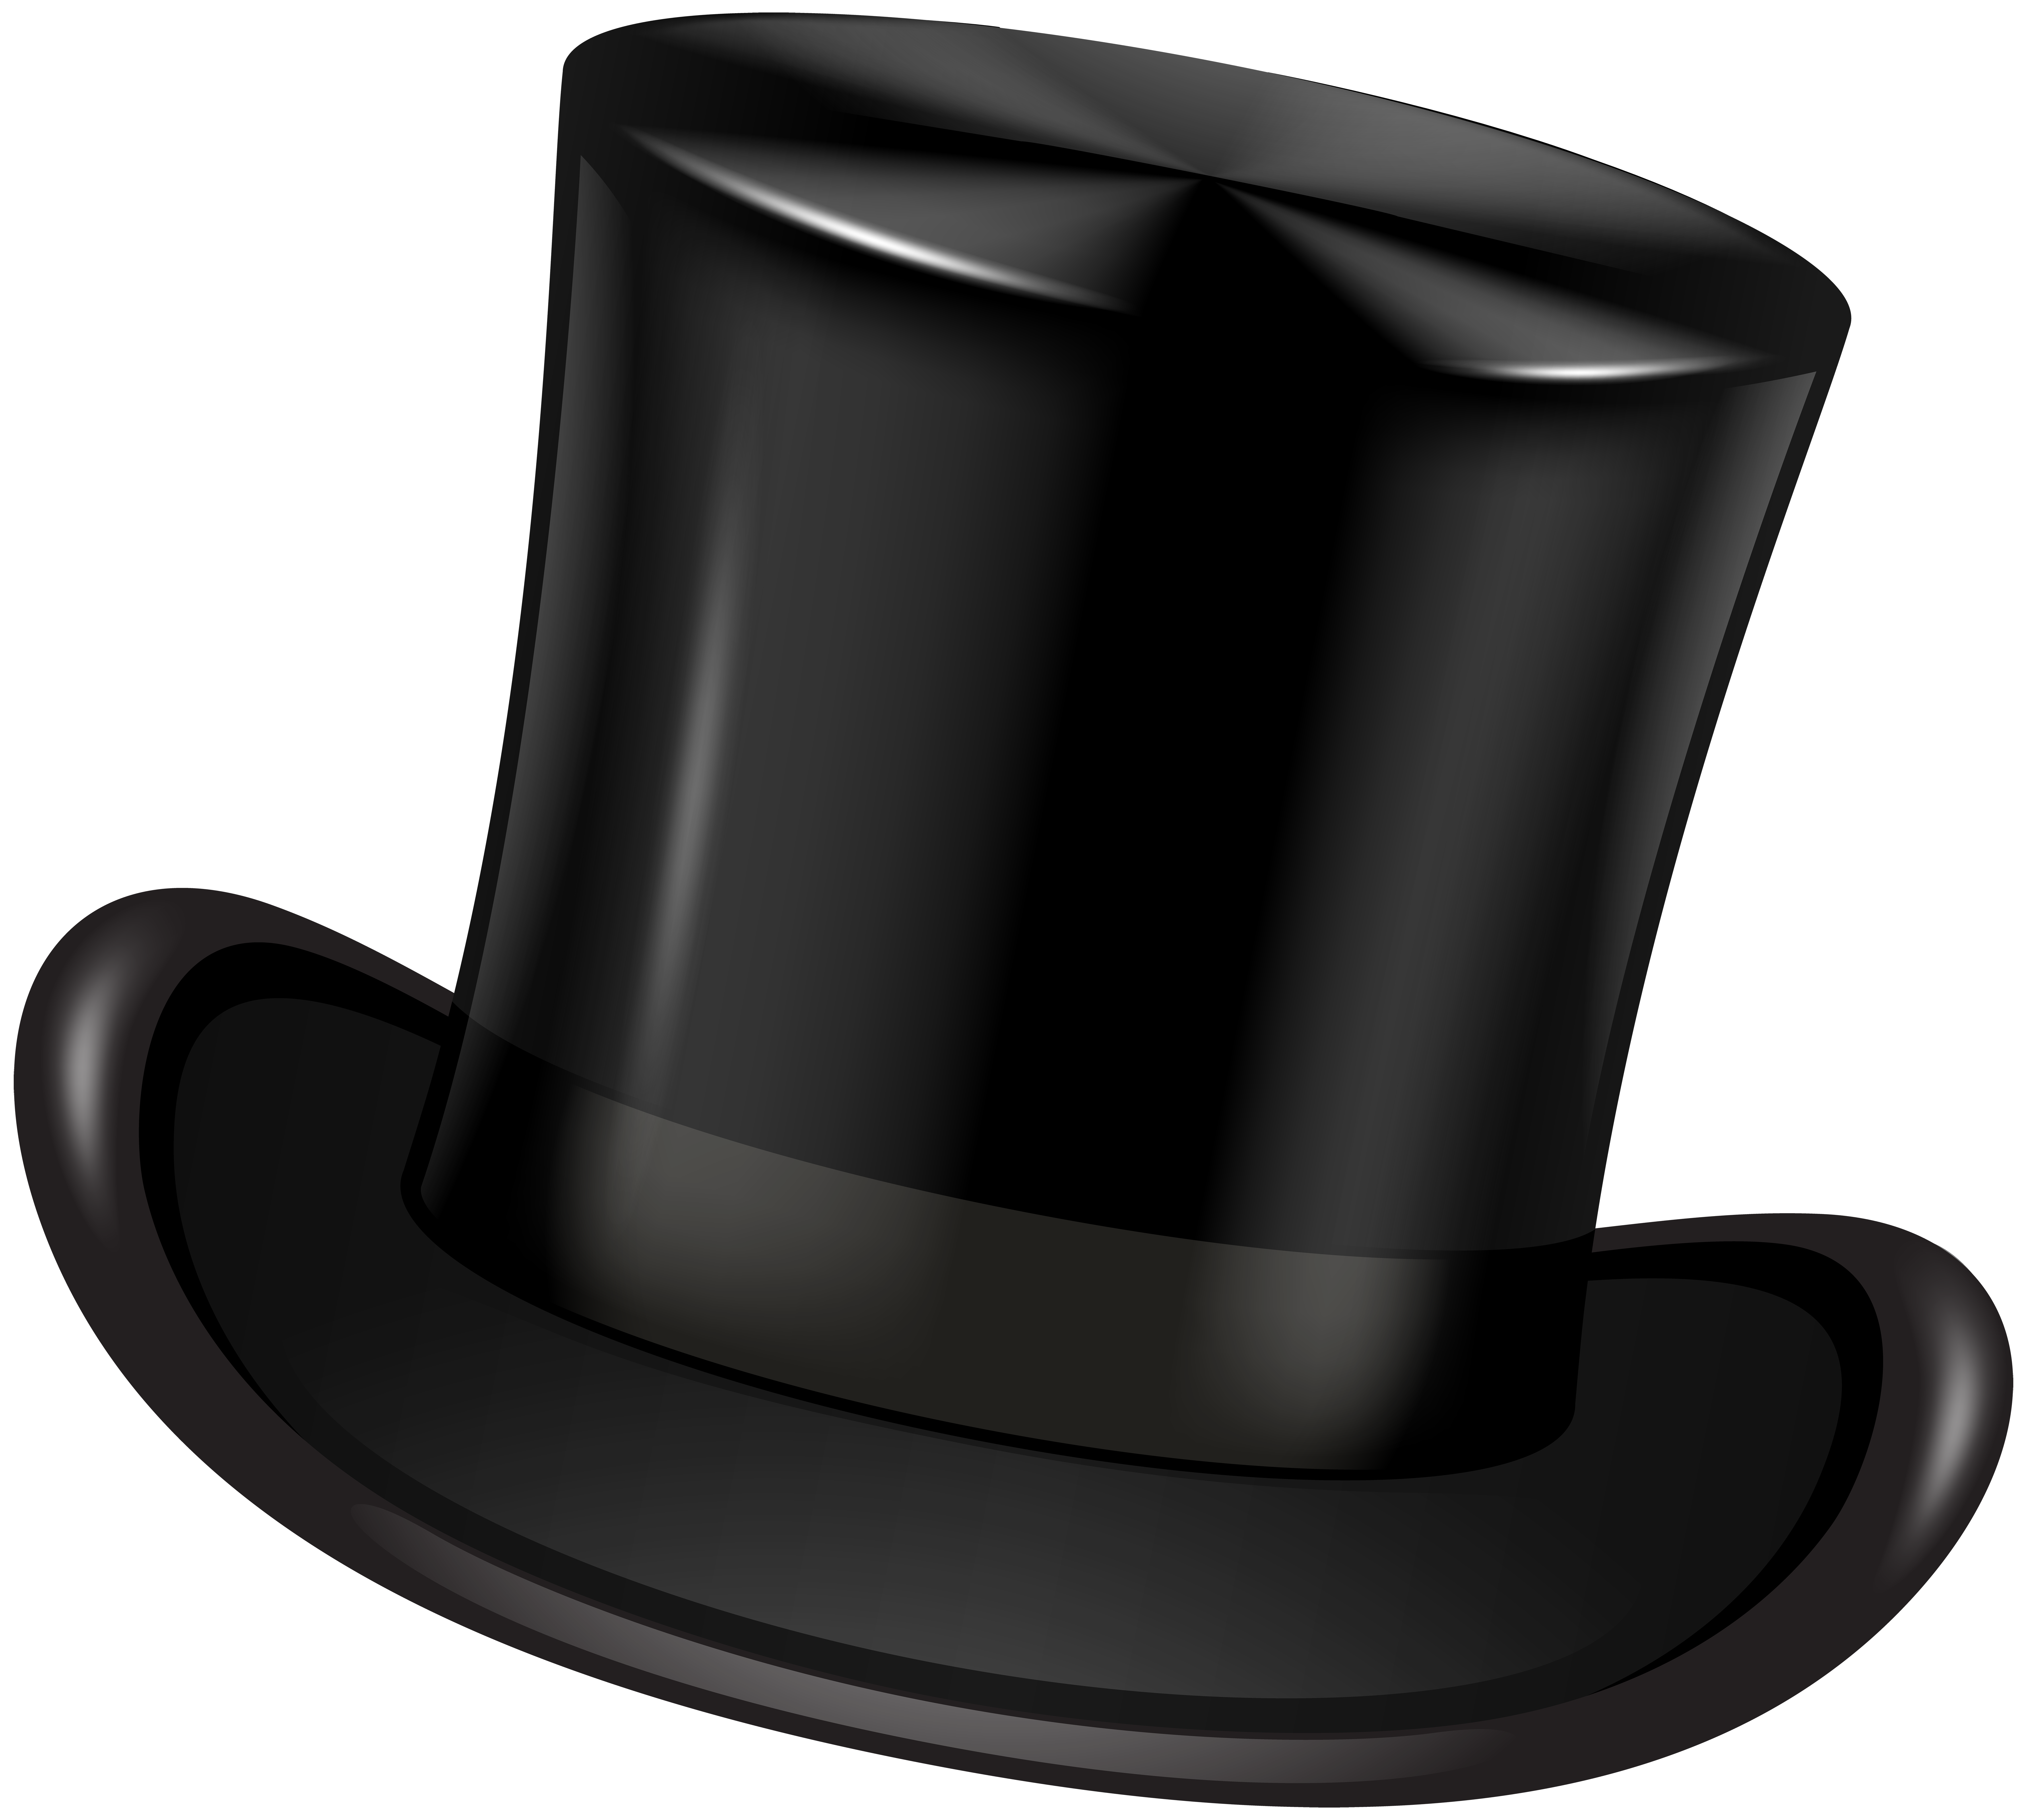 Black top hat clipart clip black and white Black Top Hat Transparent Clip Art PNG Image | Gallery Yopriceville ... clip black and white